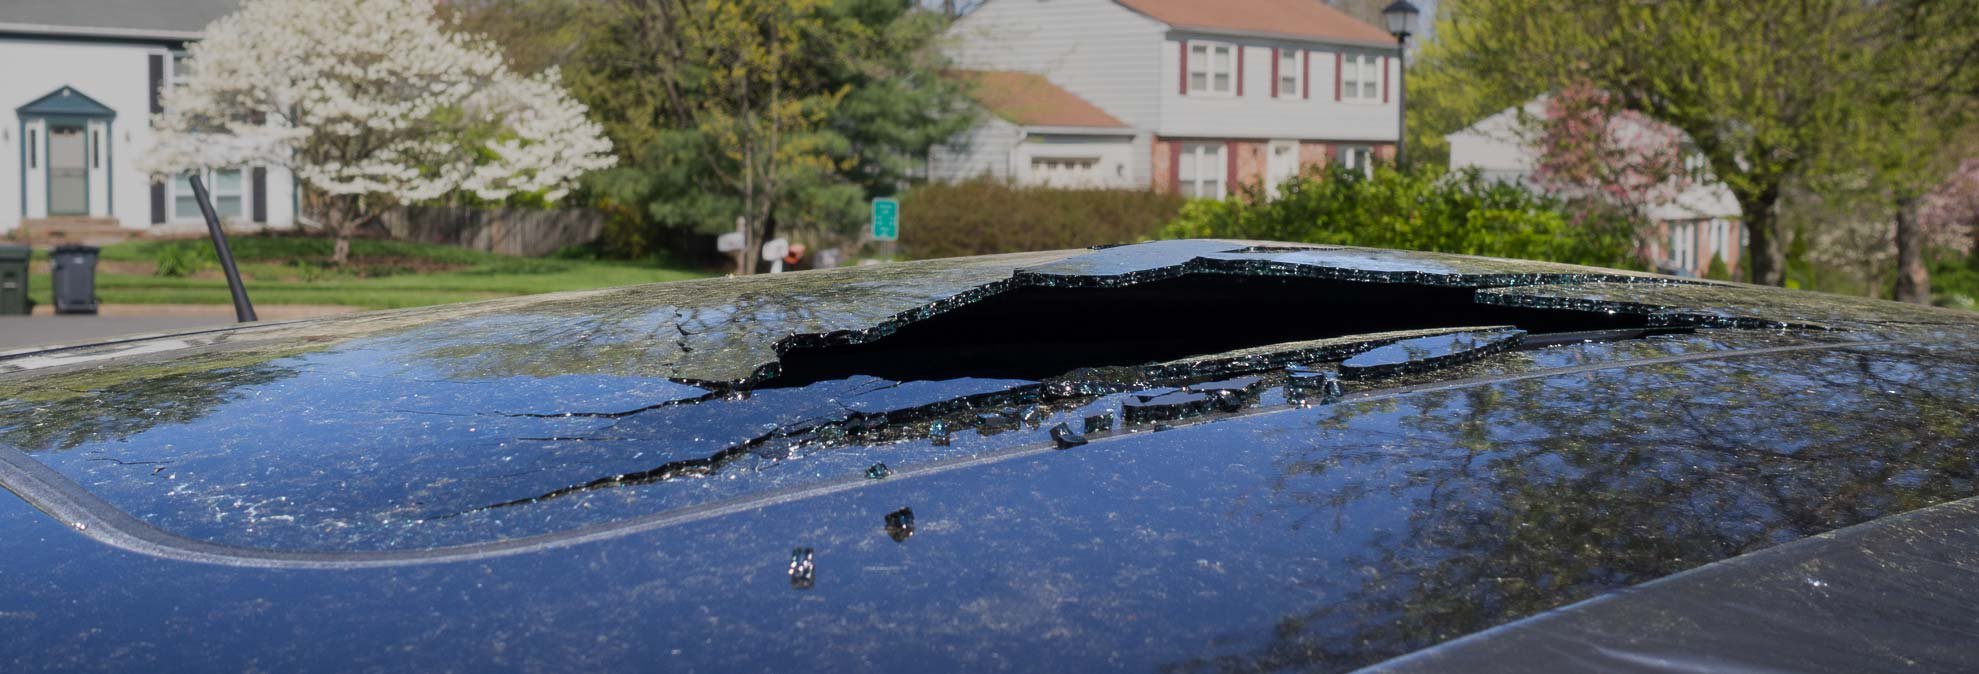 Exploding Sunroof Cases Head to Court - Consumer Reports